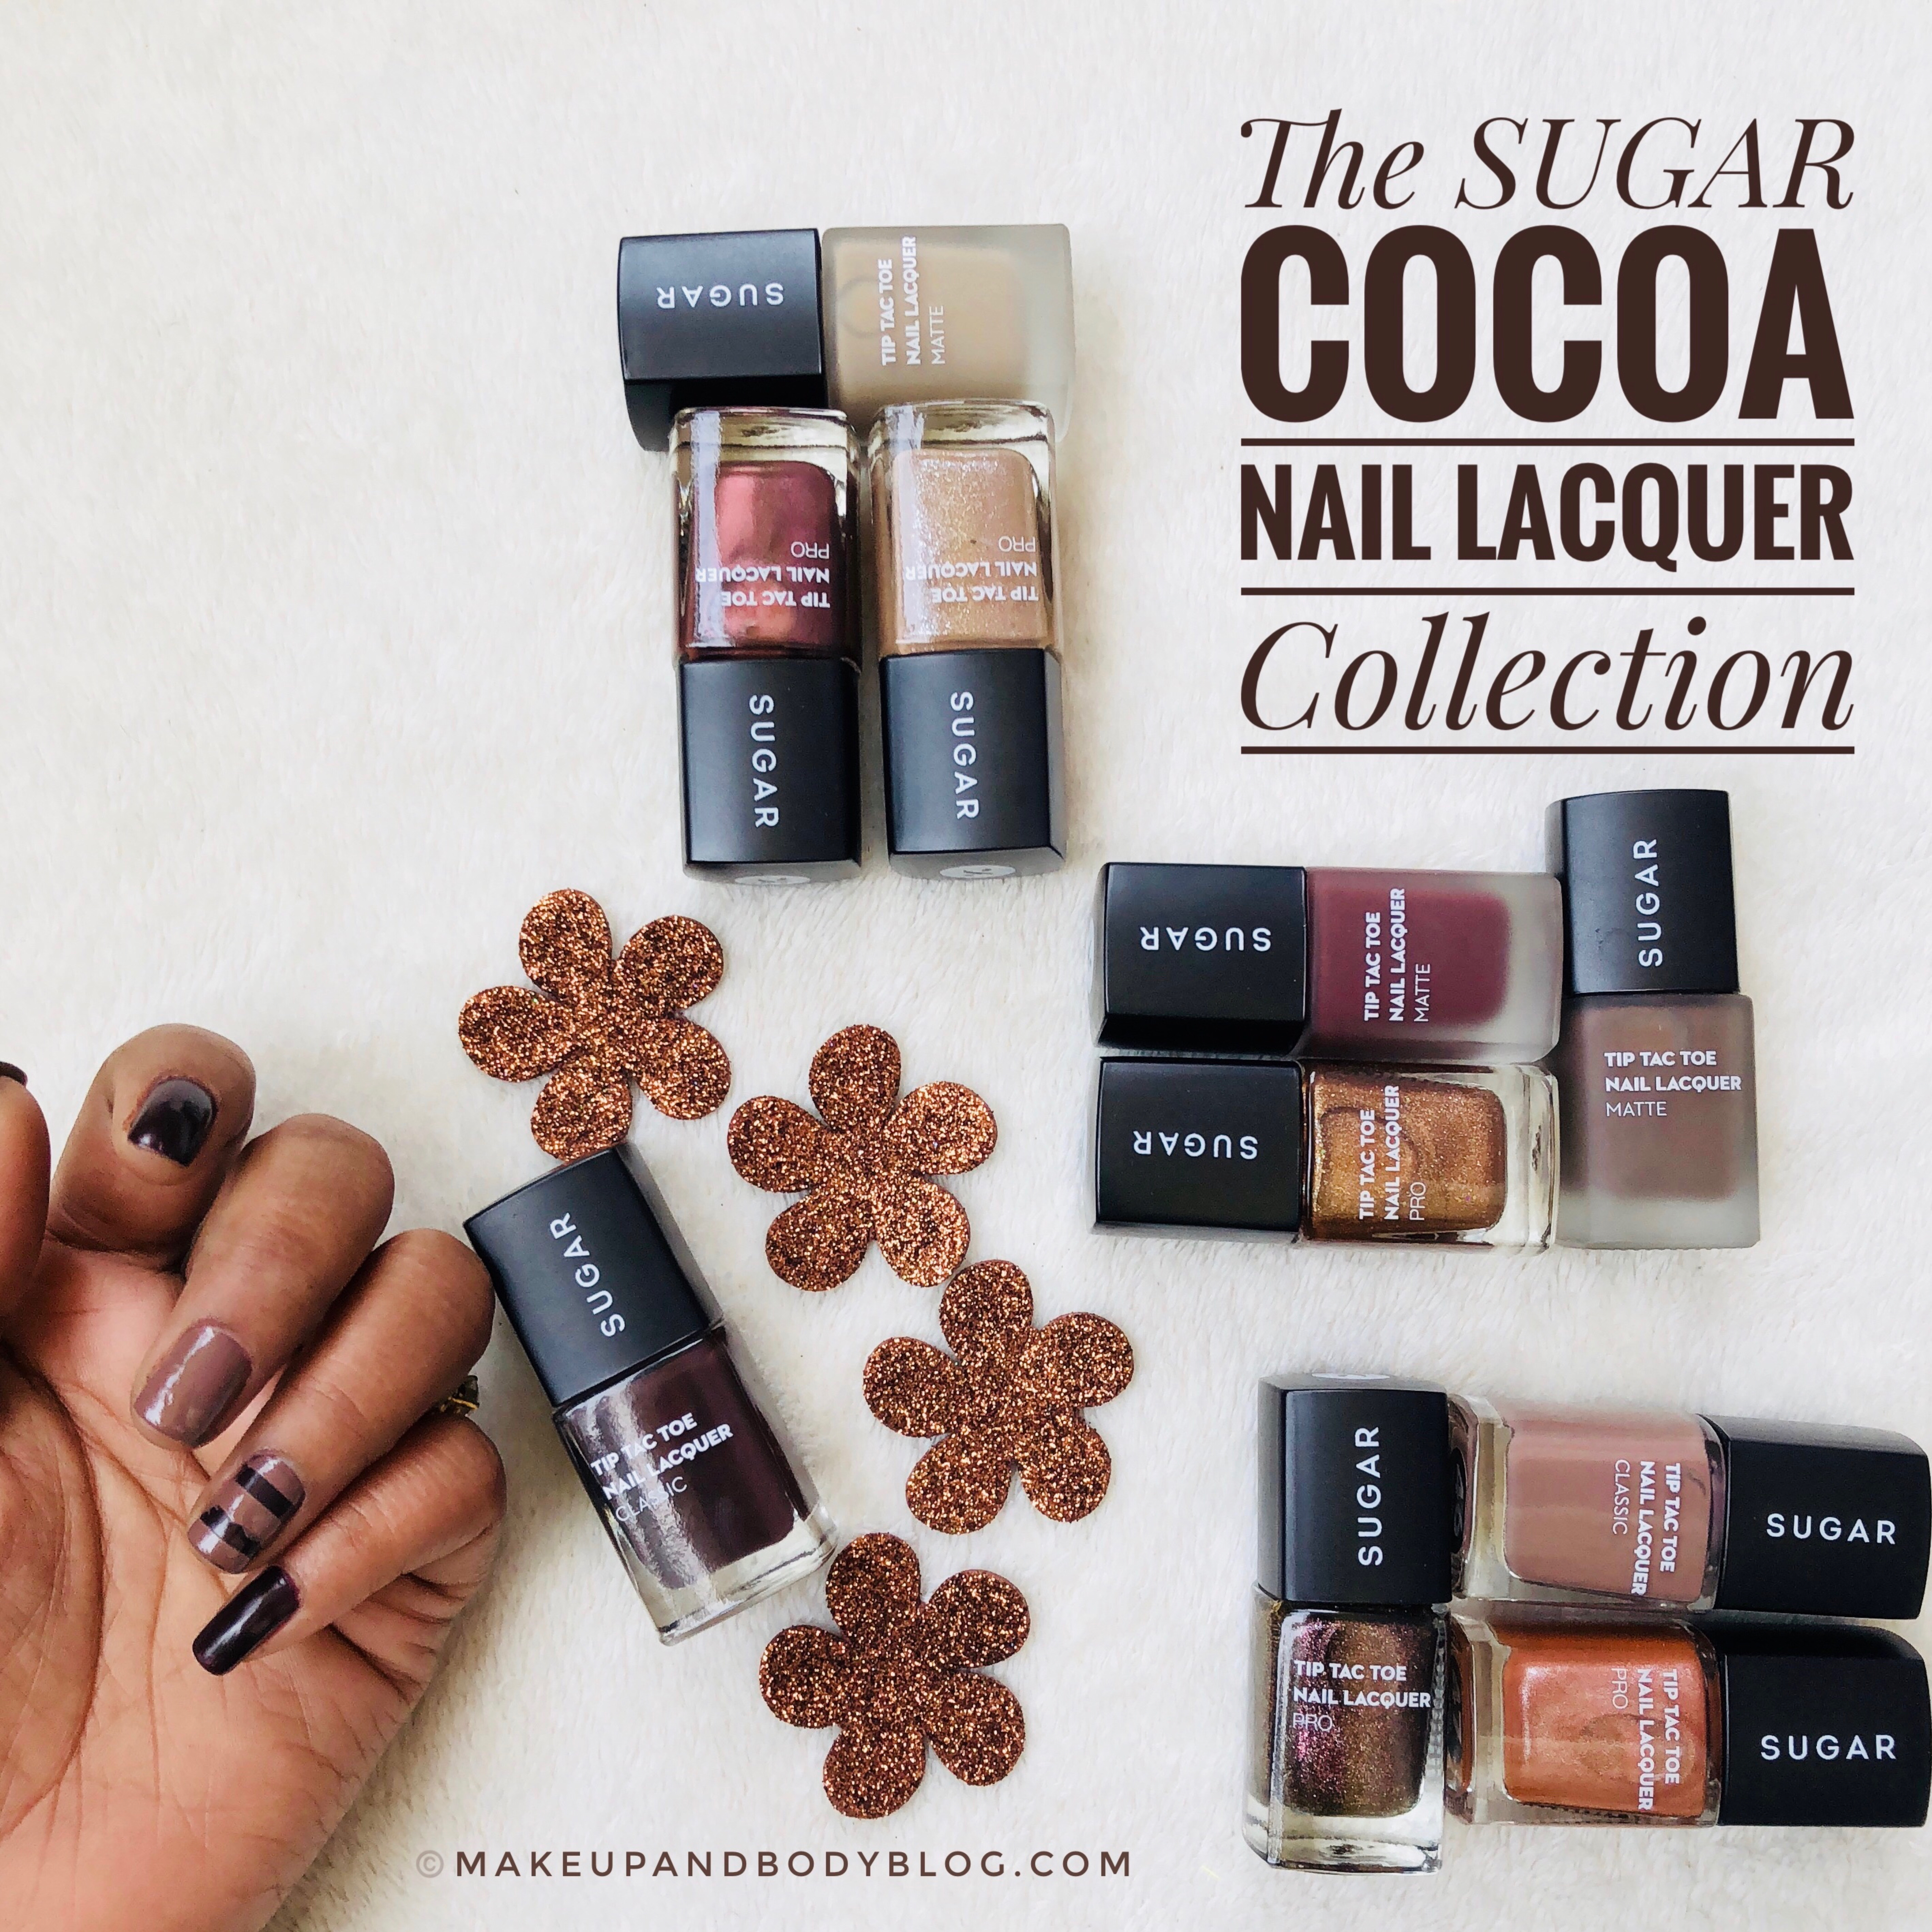 ❄️ WINTER🧣 + 🤩SUGAR'S COCOA 💅NAIL LACQUERS COLLECTION = 😍DOPE!!!🙌 . . 😍Check out my review if you haven't already! ❣️Clickable link in my bio❣️ 🍁@trysugar •••••••••••••••••••••••••••••••••••••••••••••••••••••••••••• 🍁 🍁 🍁 🍁 🍁 🍁 🍁 🍁 🍁 #sugarcosmetics #cocoanails #nailsofinstagram #nail #nailsonfleek #fallnails #bestnaillaquer #potd #notd #bestoftheday #postoftheday #nails💅 #inlovewithbrown #sugarcocoa #tiptactoe #winterready #glitterynails #brownnails #potd #beautyblogger #keepshining #bblogger #keepitlit #keepitclassy #PoojaRaina #truefashionholic